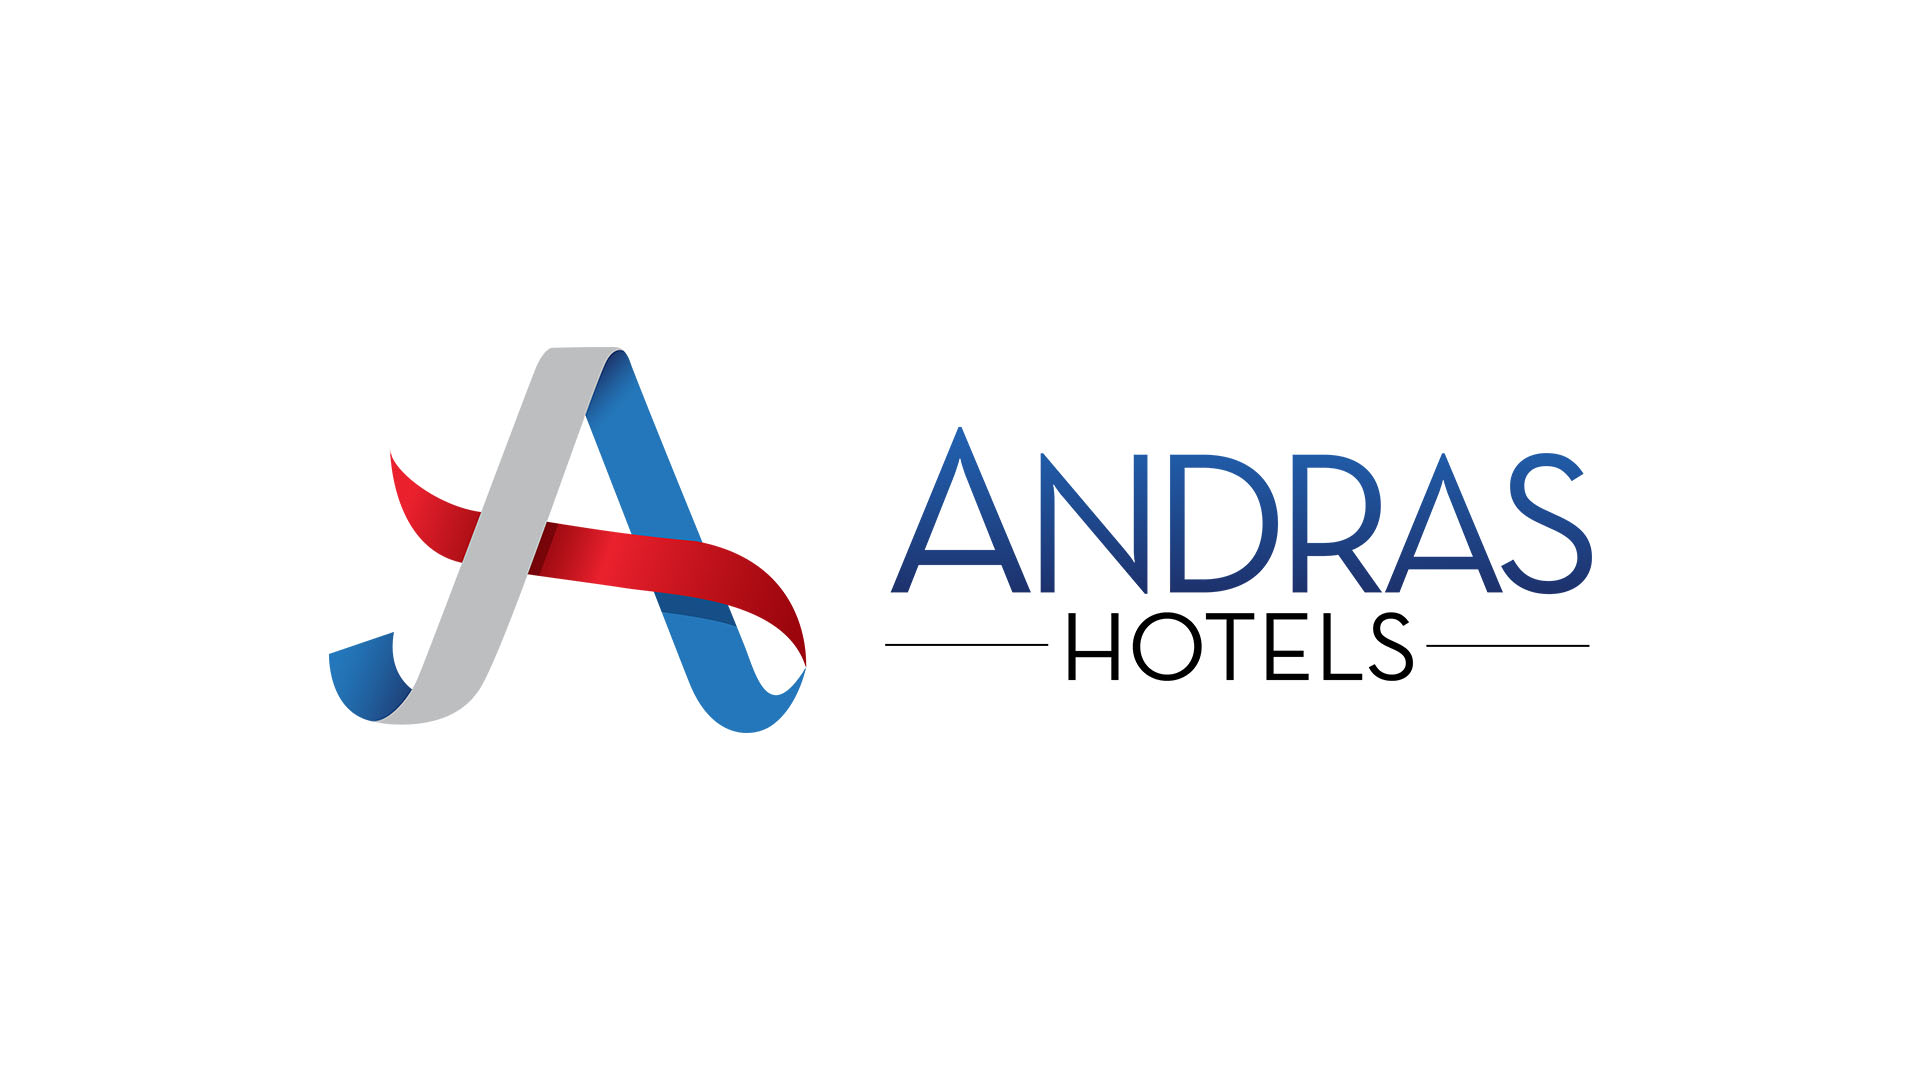 Andras Hotels